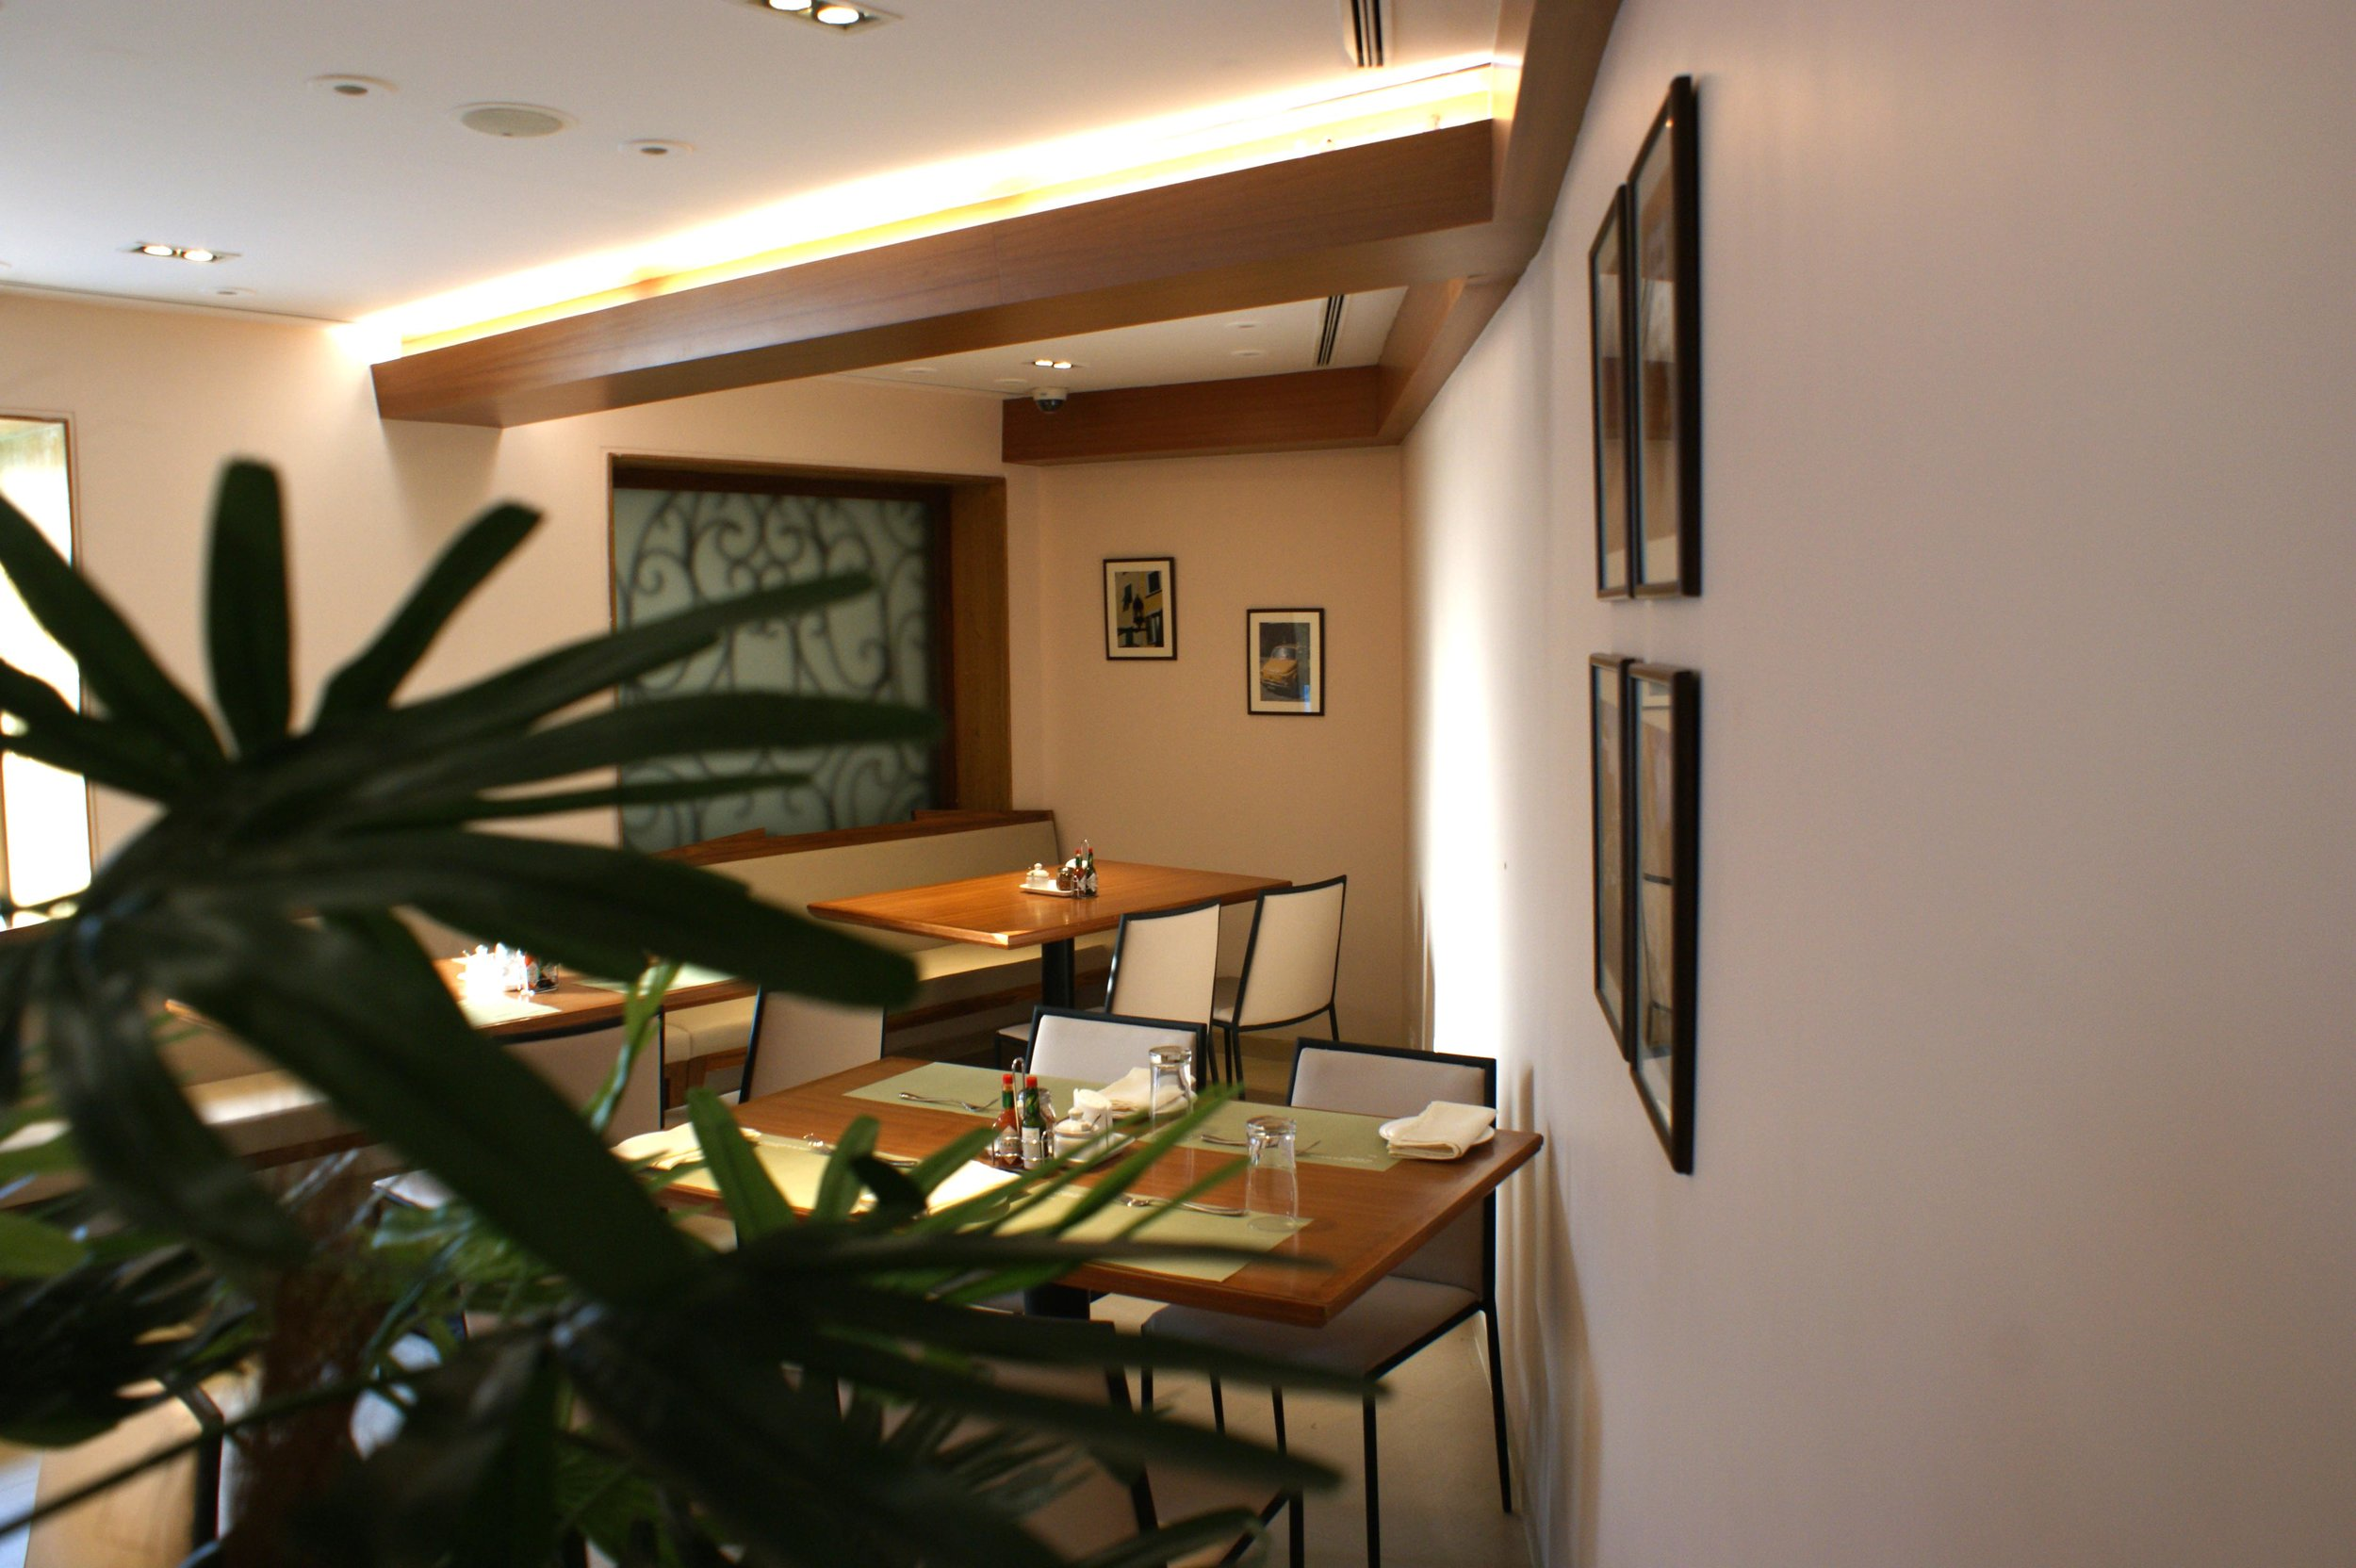 Ground Floor Casual Italian Dining